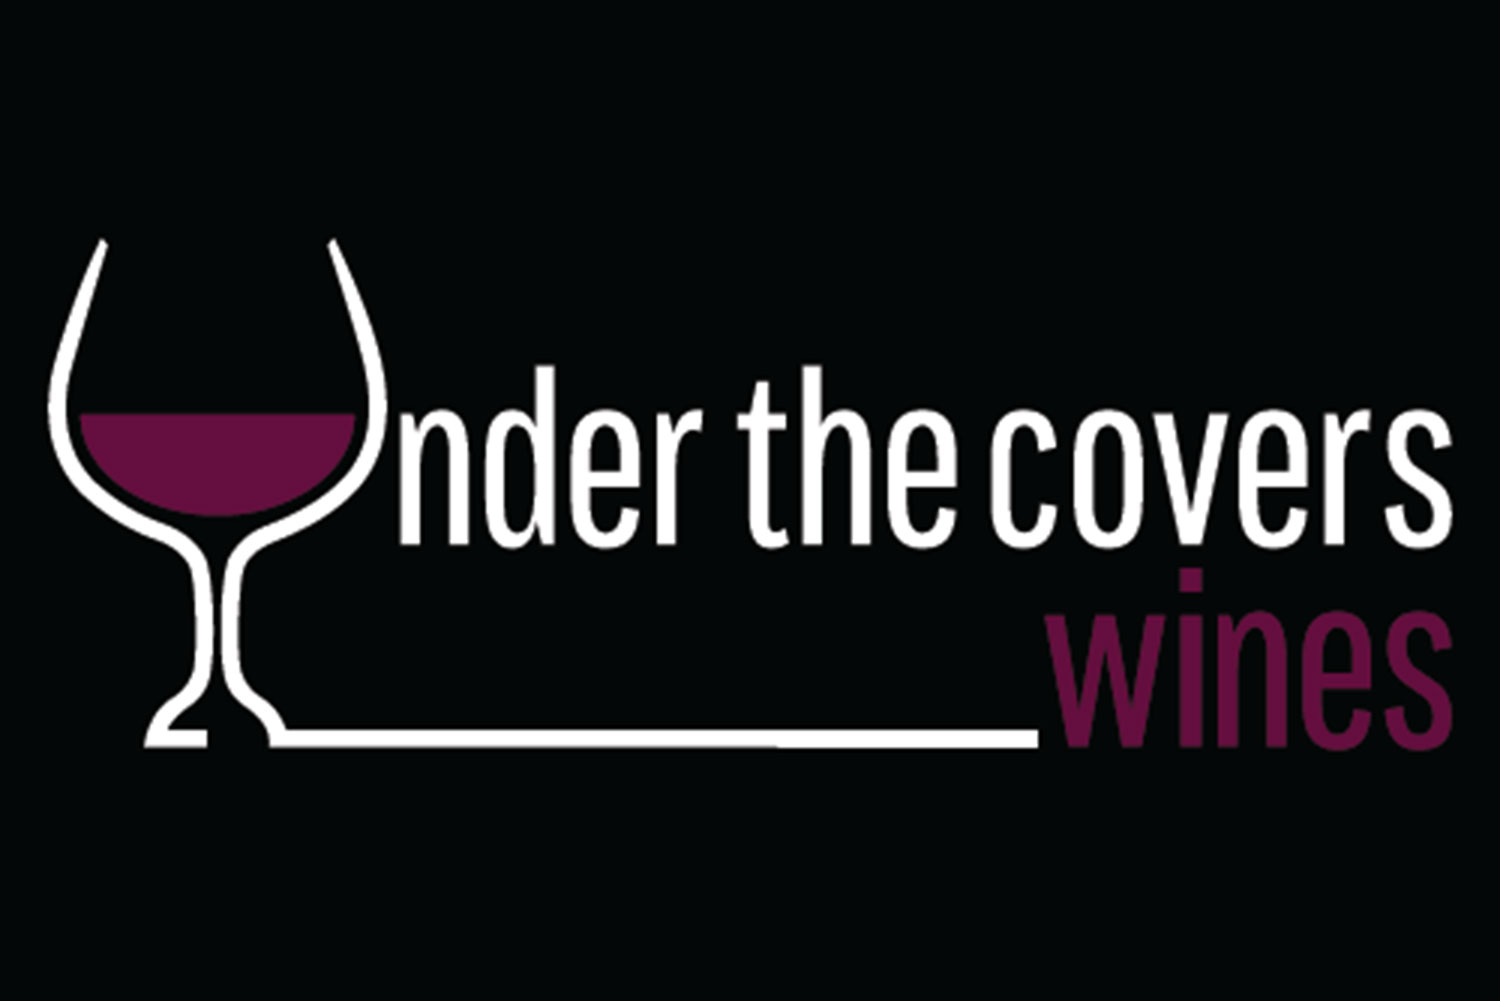 under-the-covers-wine-Logo-LadyLexProductions.jpg